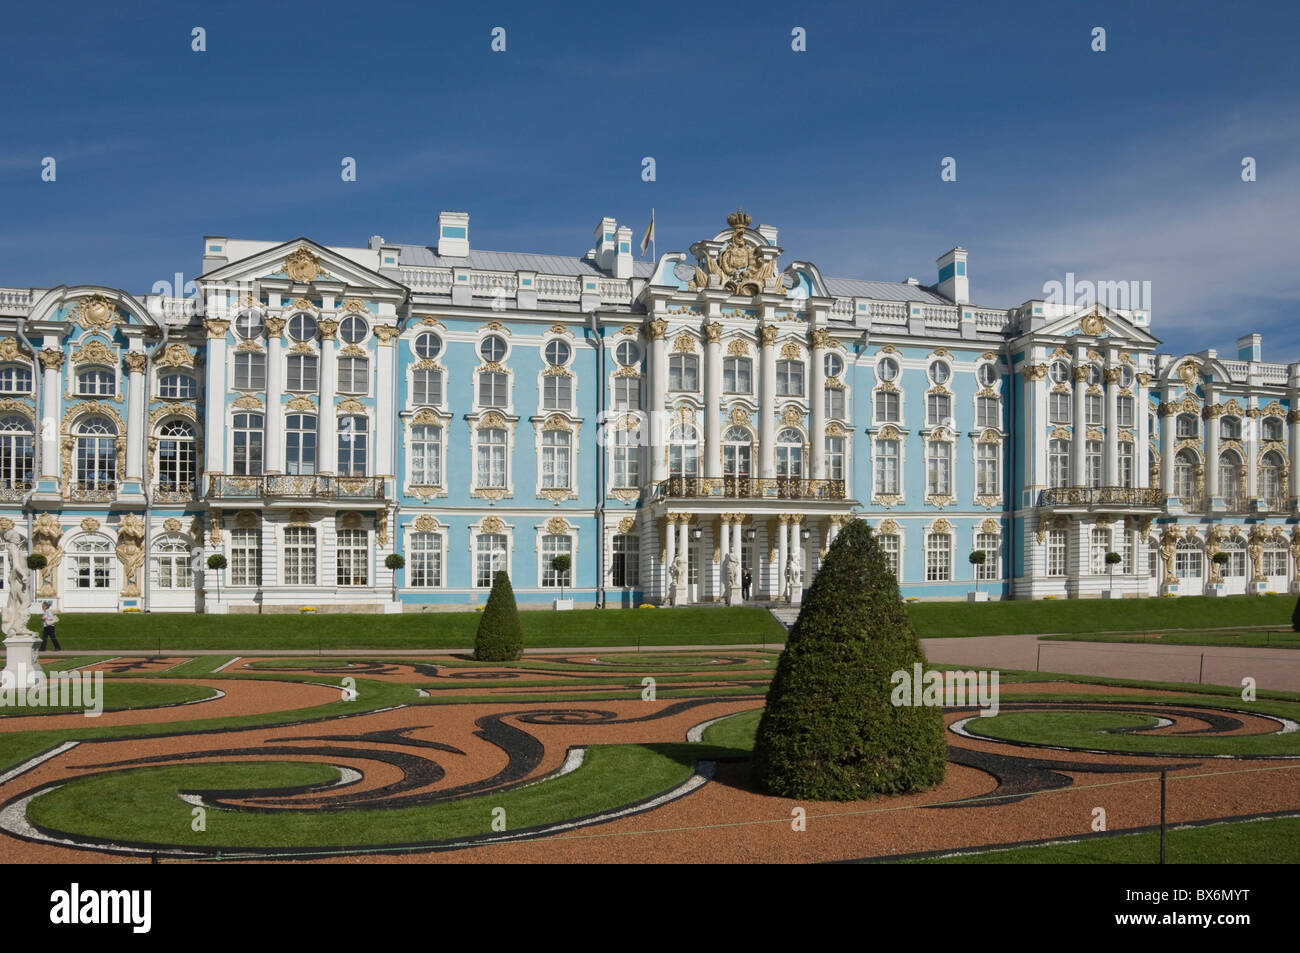 Catherine's Palace, St. Petersburg, Russia, Europe - Stock Image